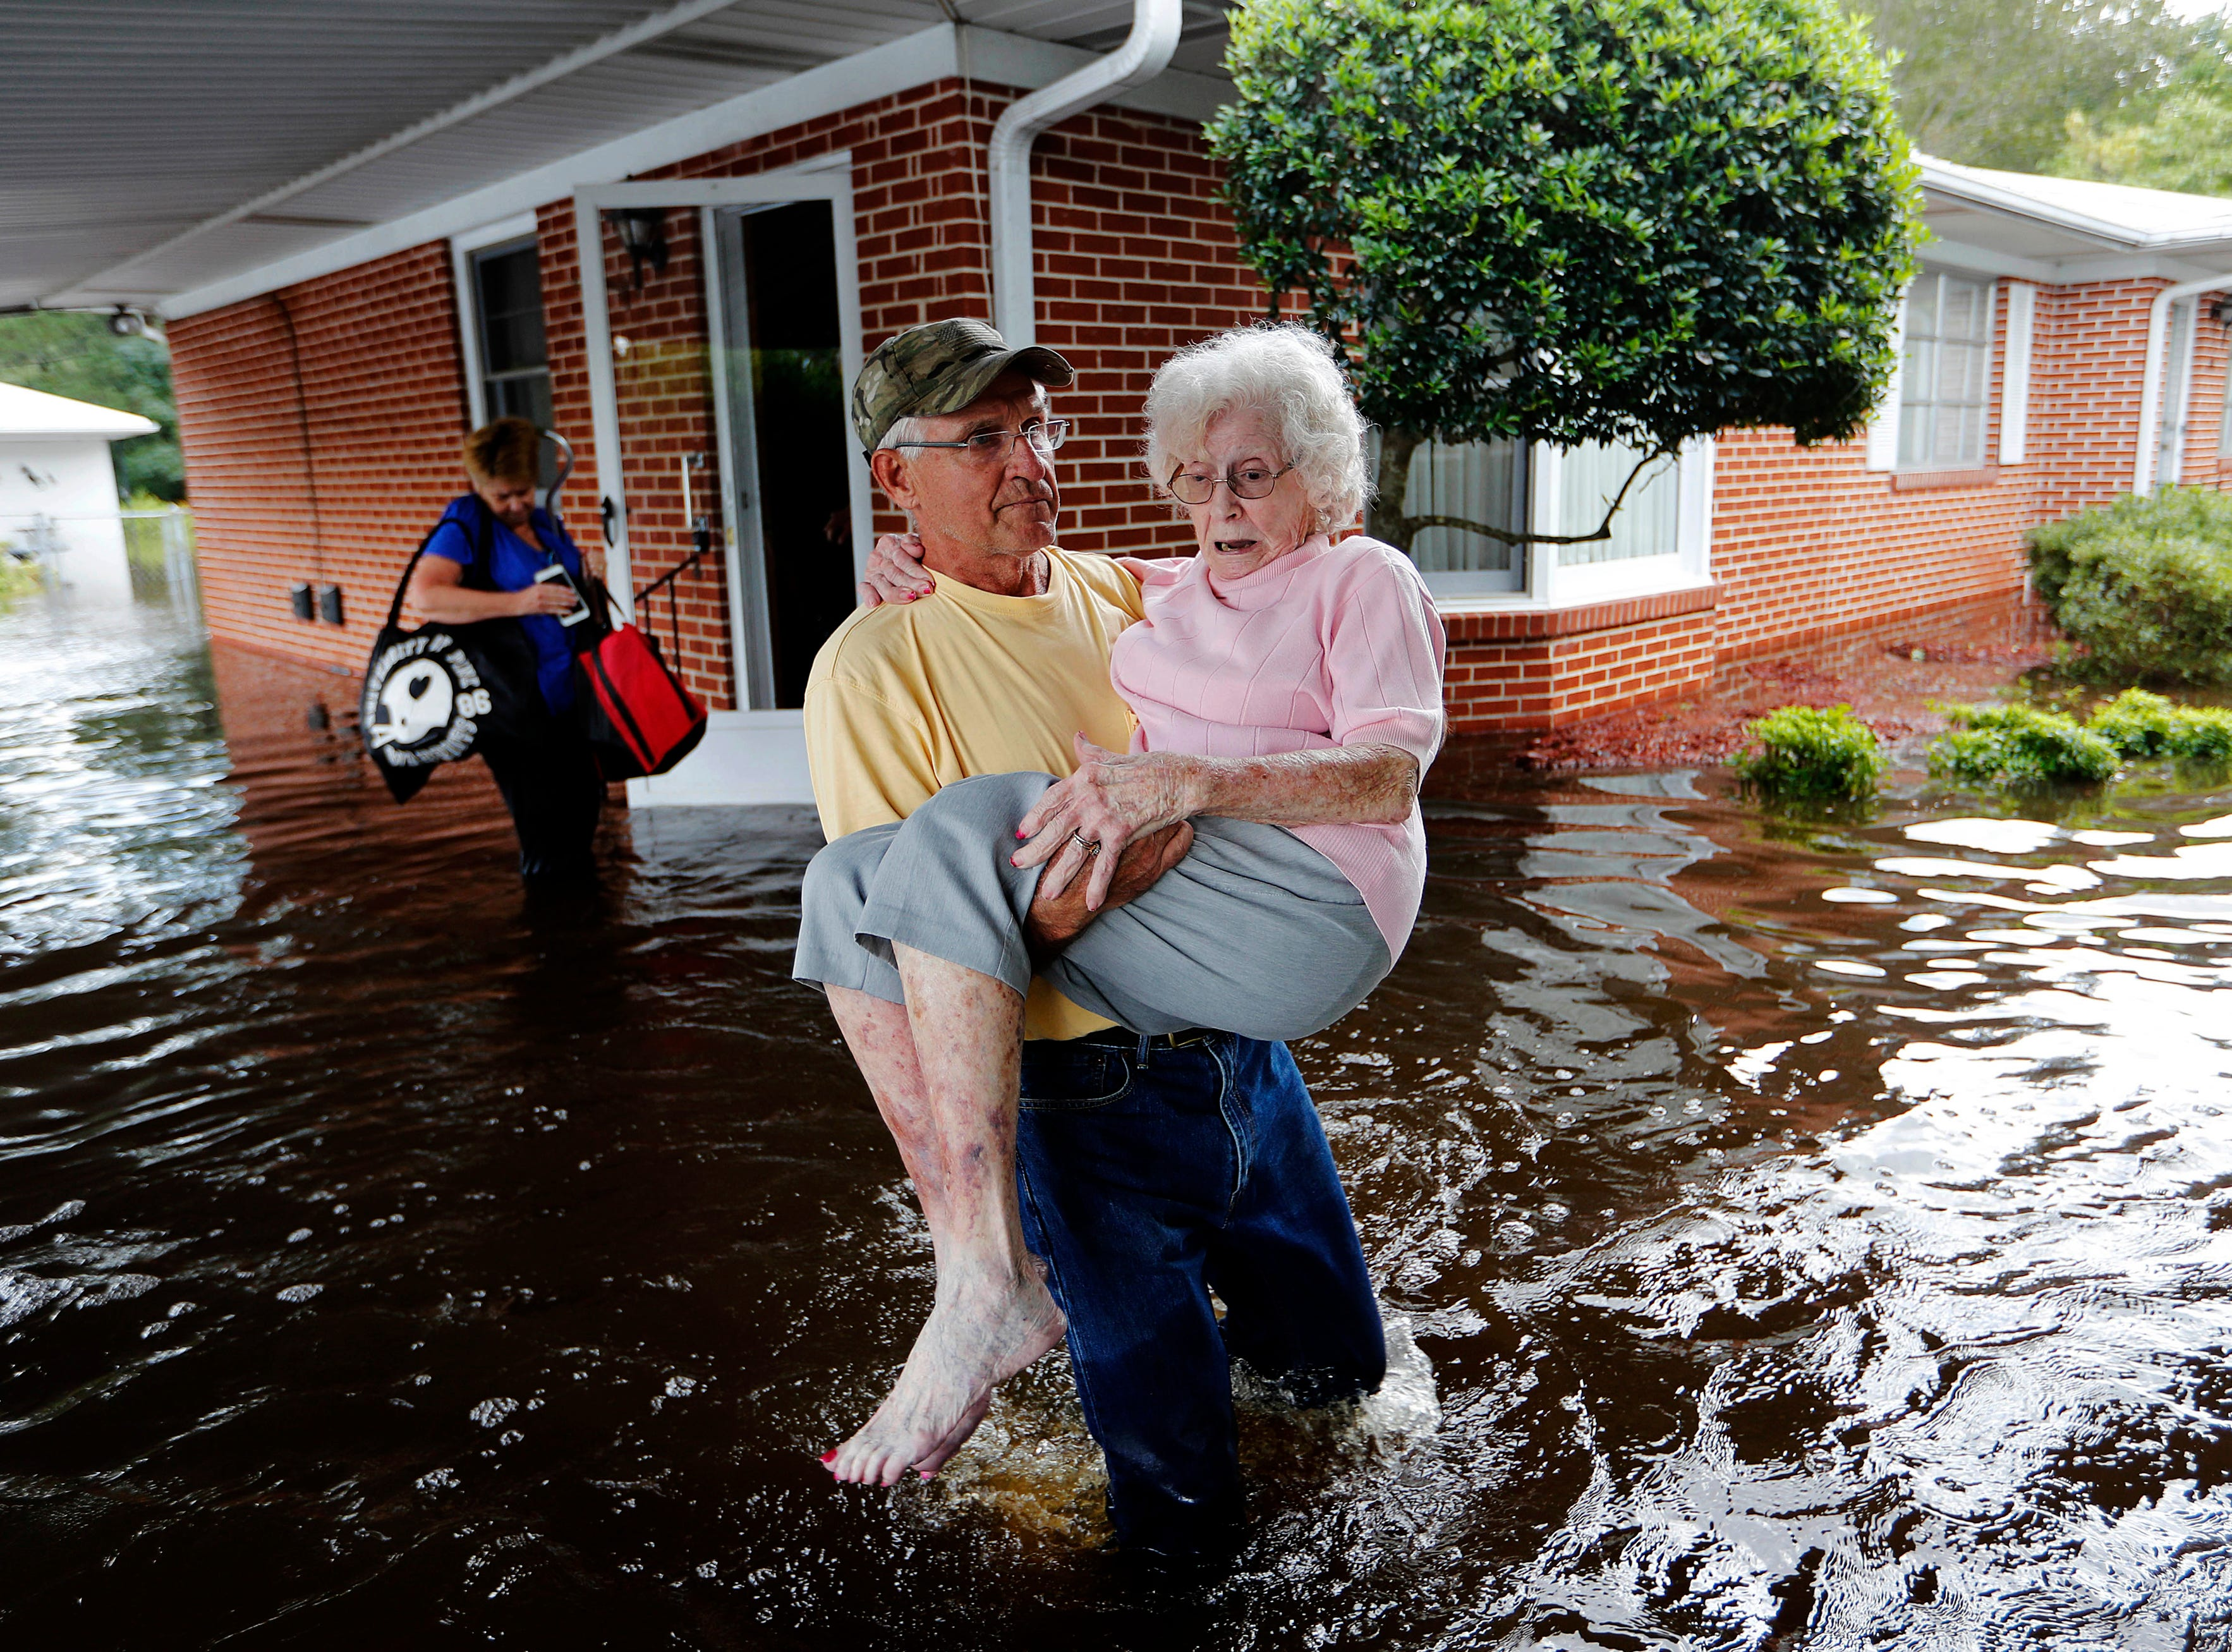 Bob Richling carries Iris Darden, 84, out of her flooded home as her daughter-in-law, Pam Darden, gathers her belongings in the aftermath of Hurricane Florence in Spring Lake, N.C. on Sept. 17, 2018.